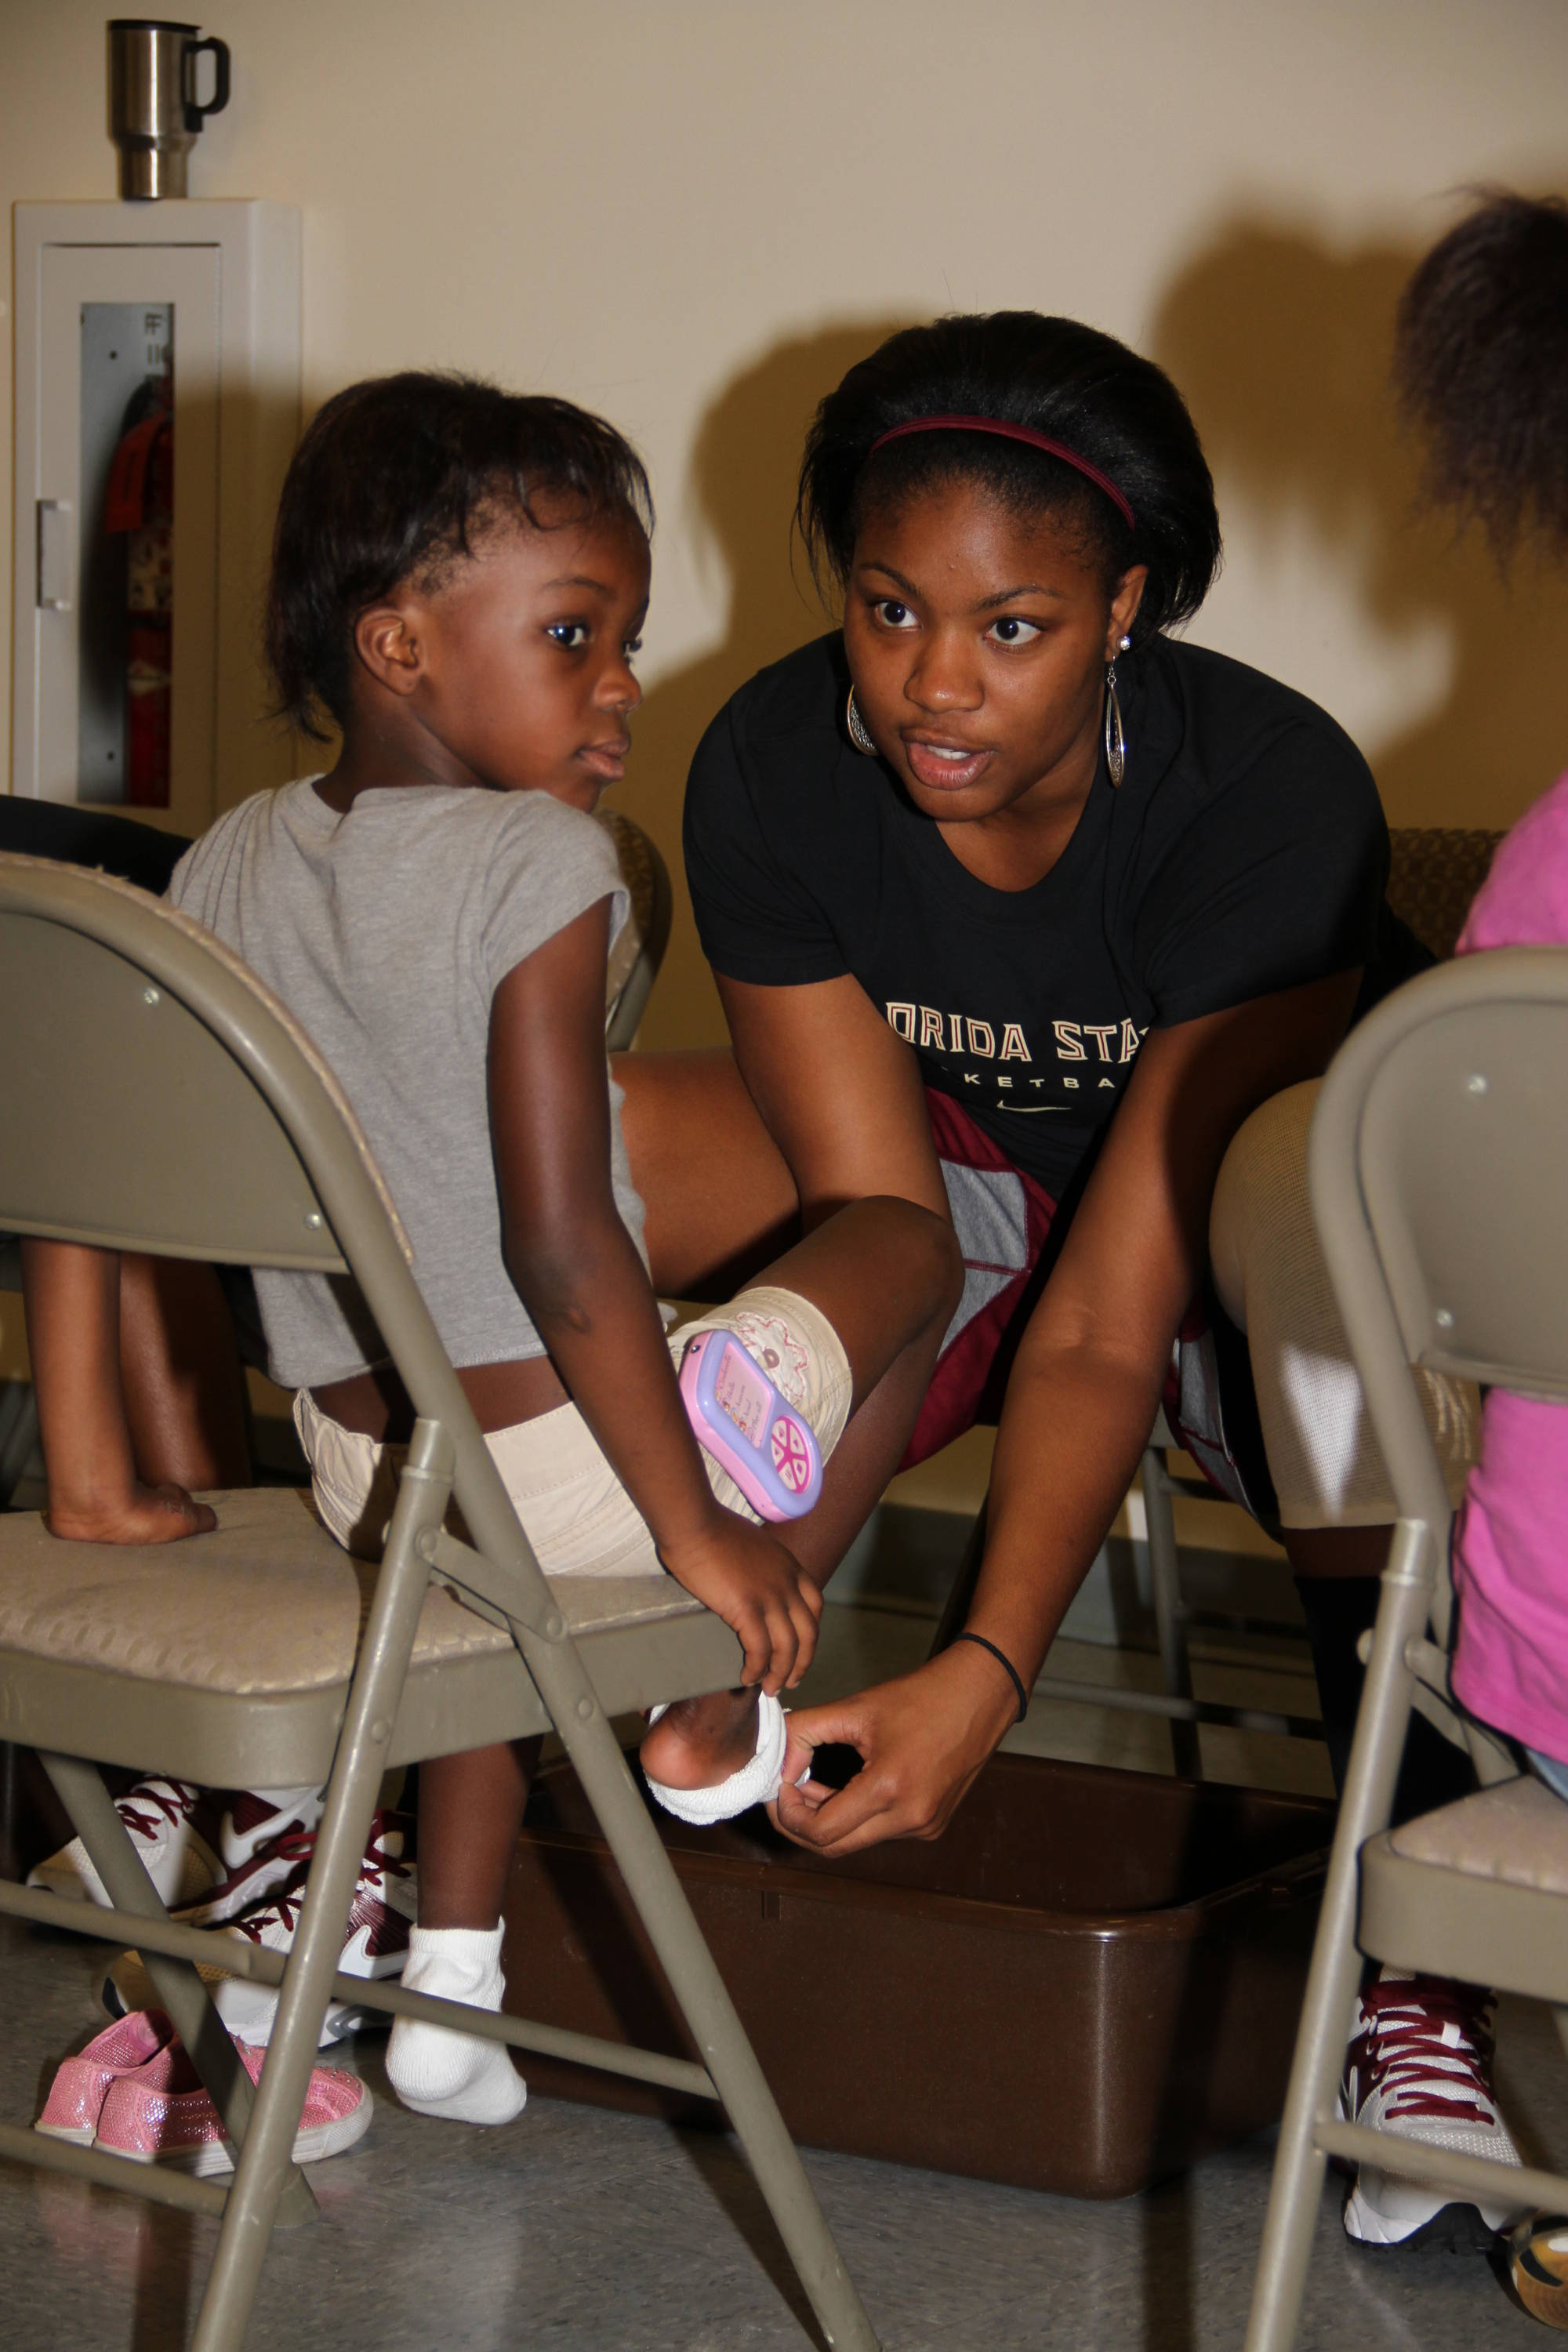 Women's Basketball Community Service: A shoe fitting at Springfield Community Center on Joe Louis Street.